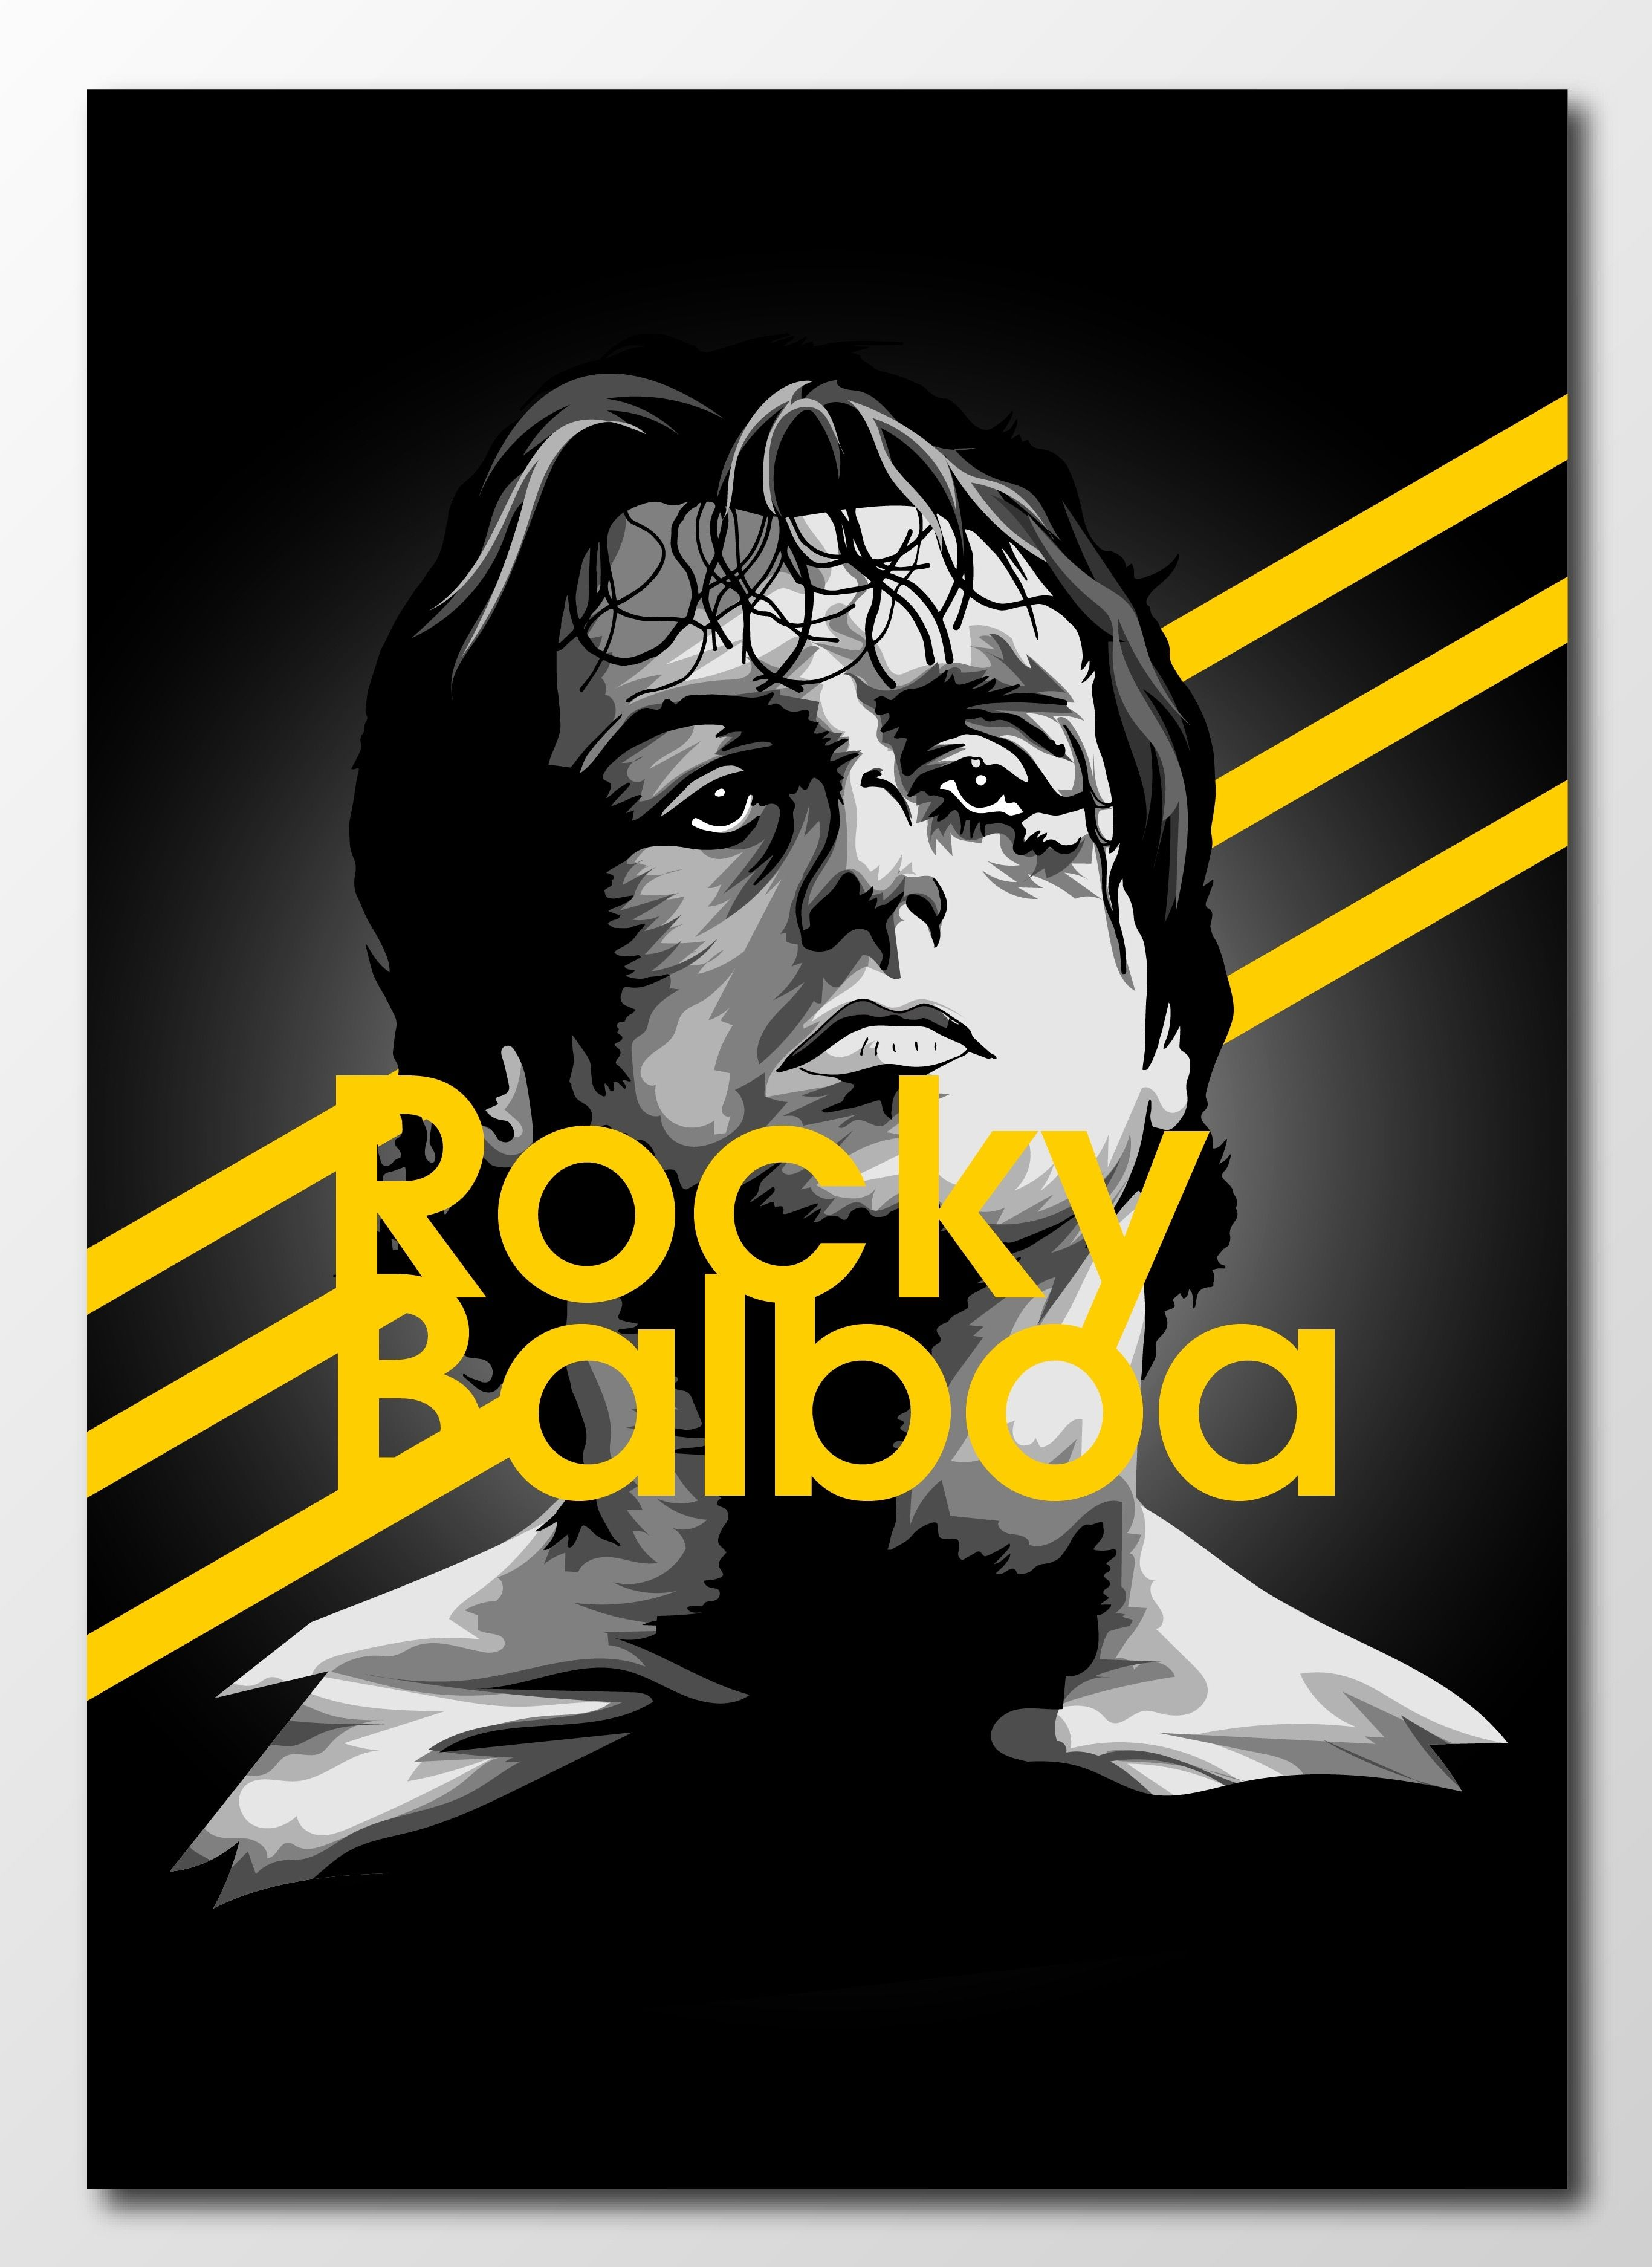 Project366 An Illustration A Day Continues With Rocky Balboa